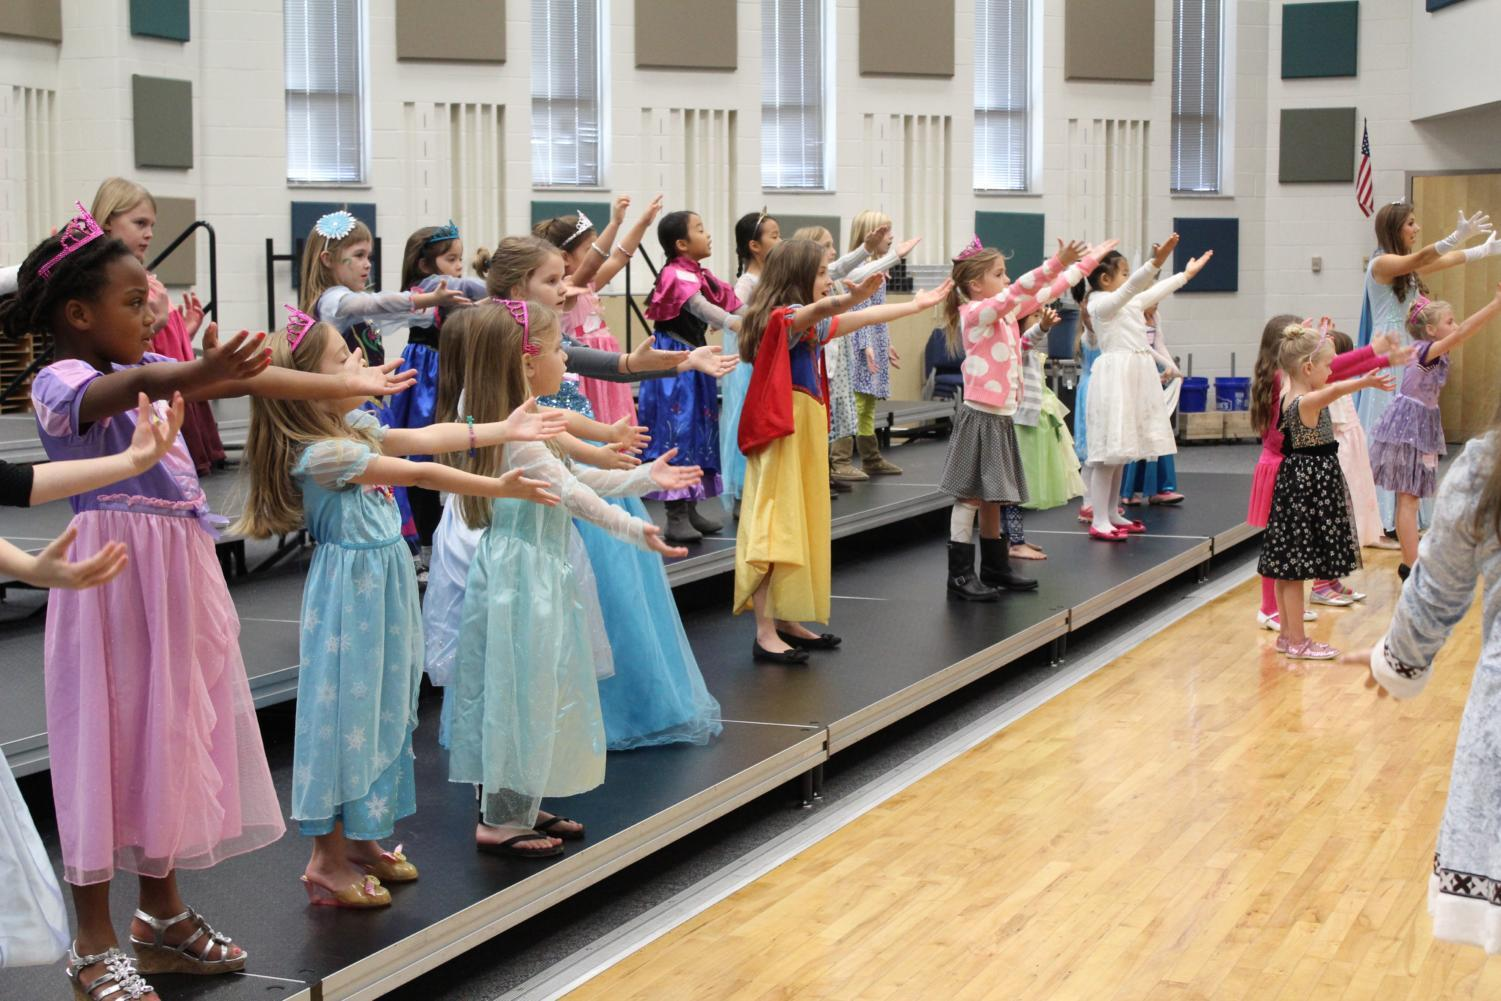 Accents members teach Princess Academy participants to dance. Kouns said the Princess Academy is also a great opportunity for early recruitment, since many parents express interest in having their kids join the choir program at this school.